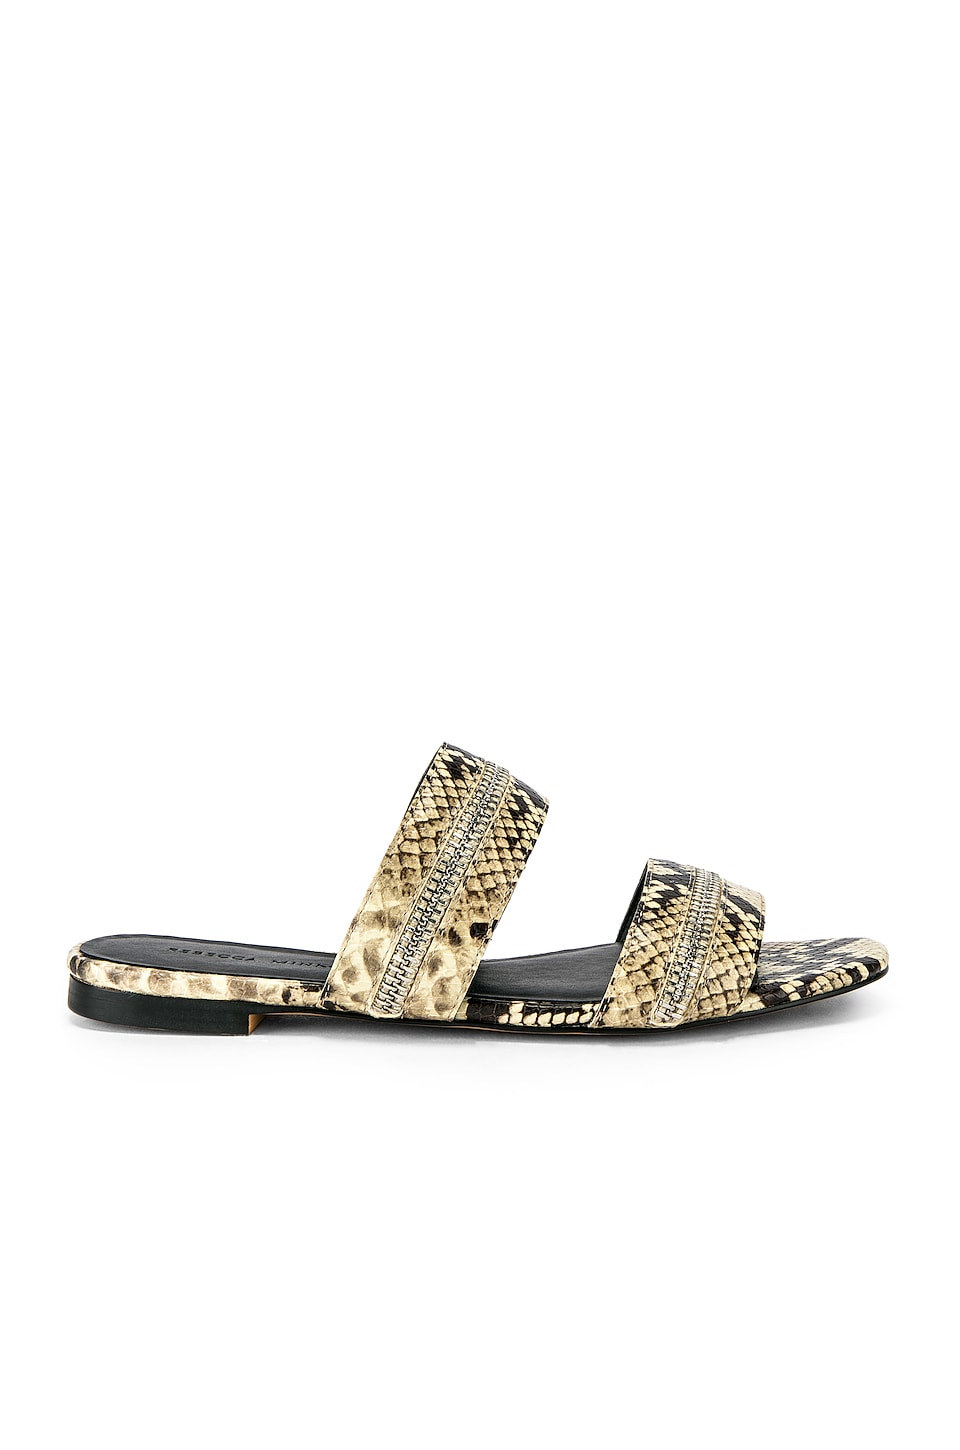 Rebecca Minkoff Marciann Slide in Butter Exotic